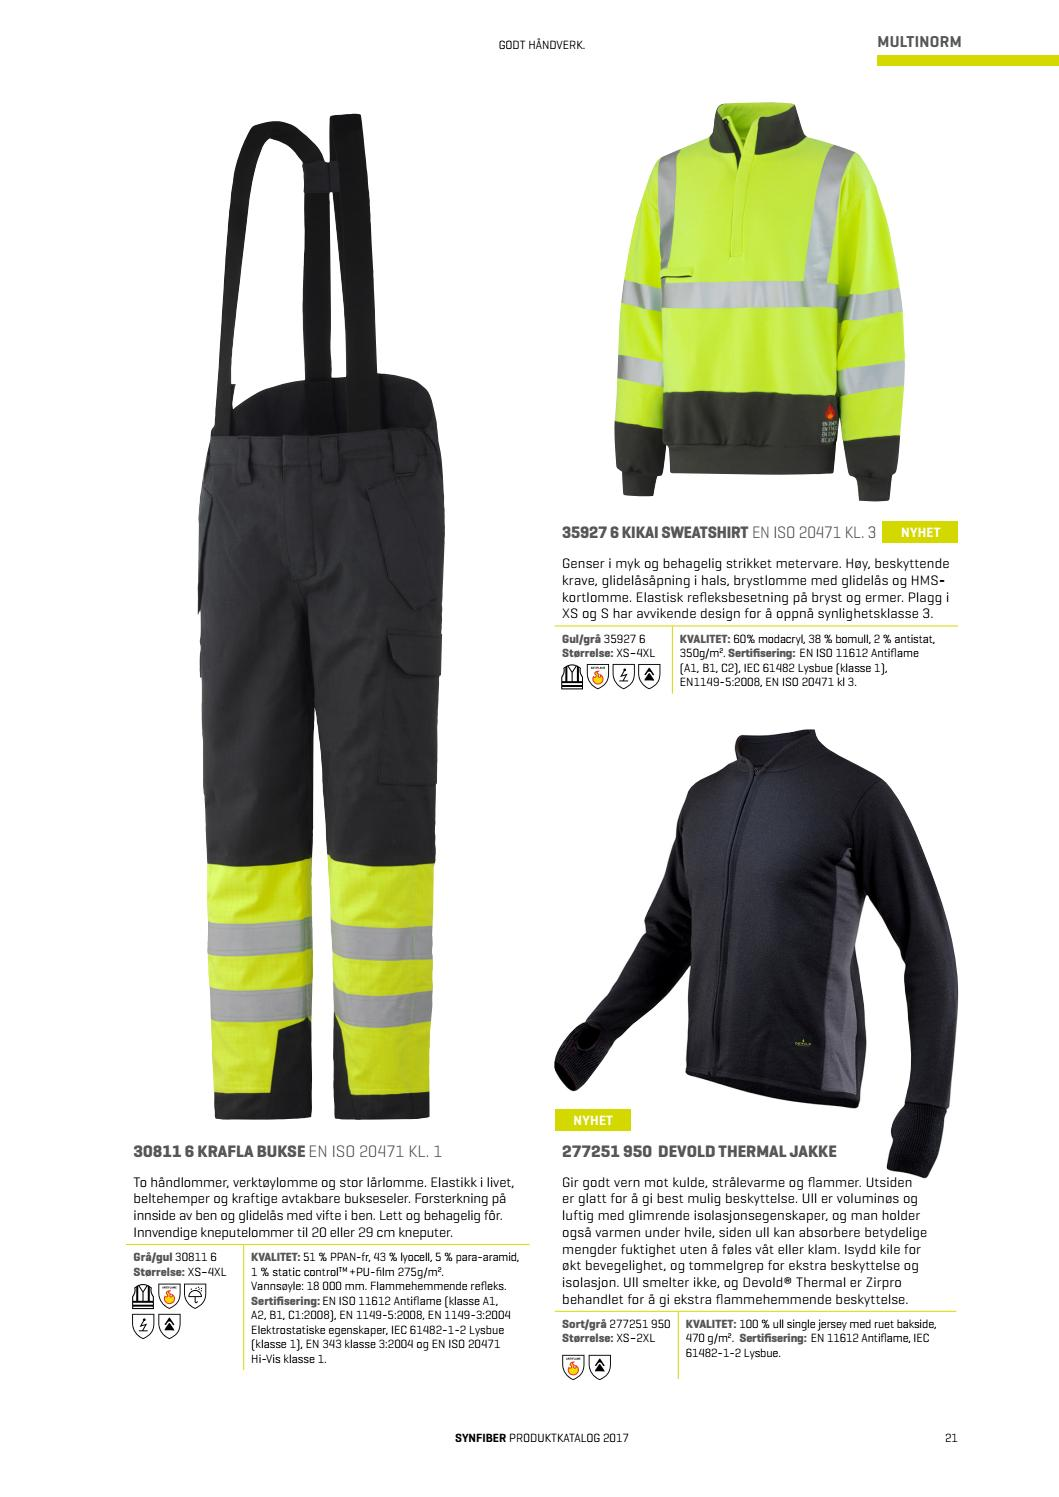 435afdd5 Synfiber Workwear katalog 2017 by Synfiber Workwear - issuu